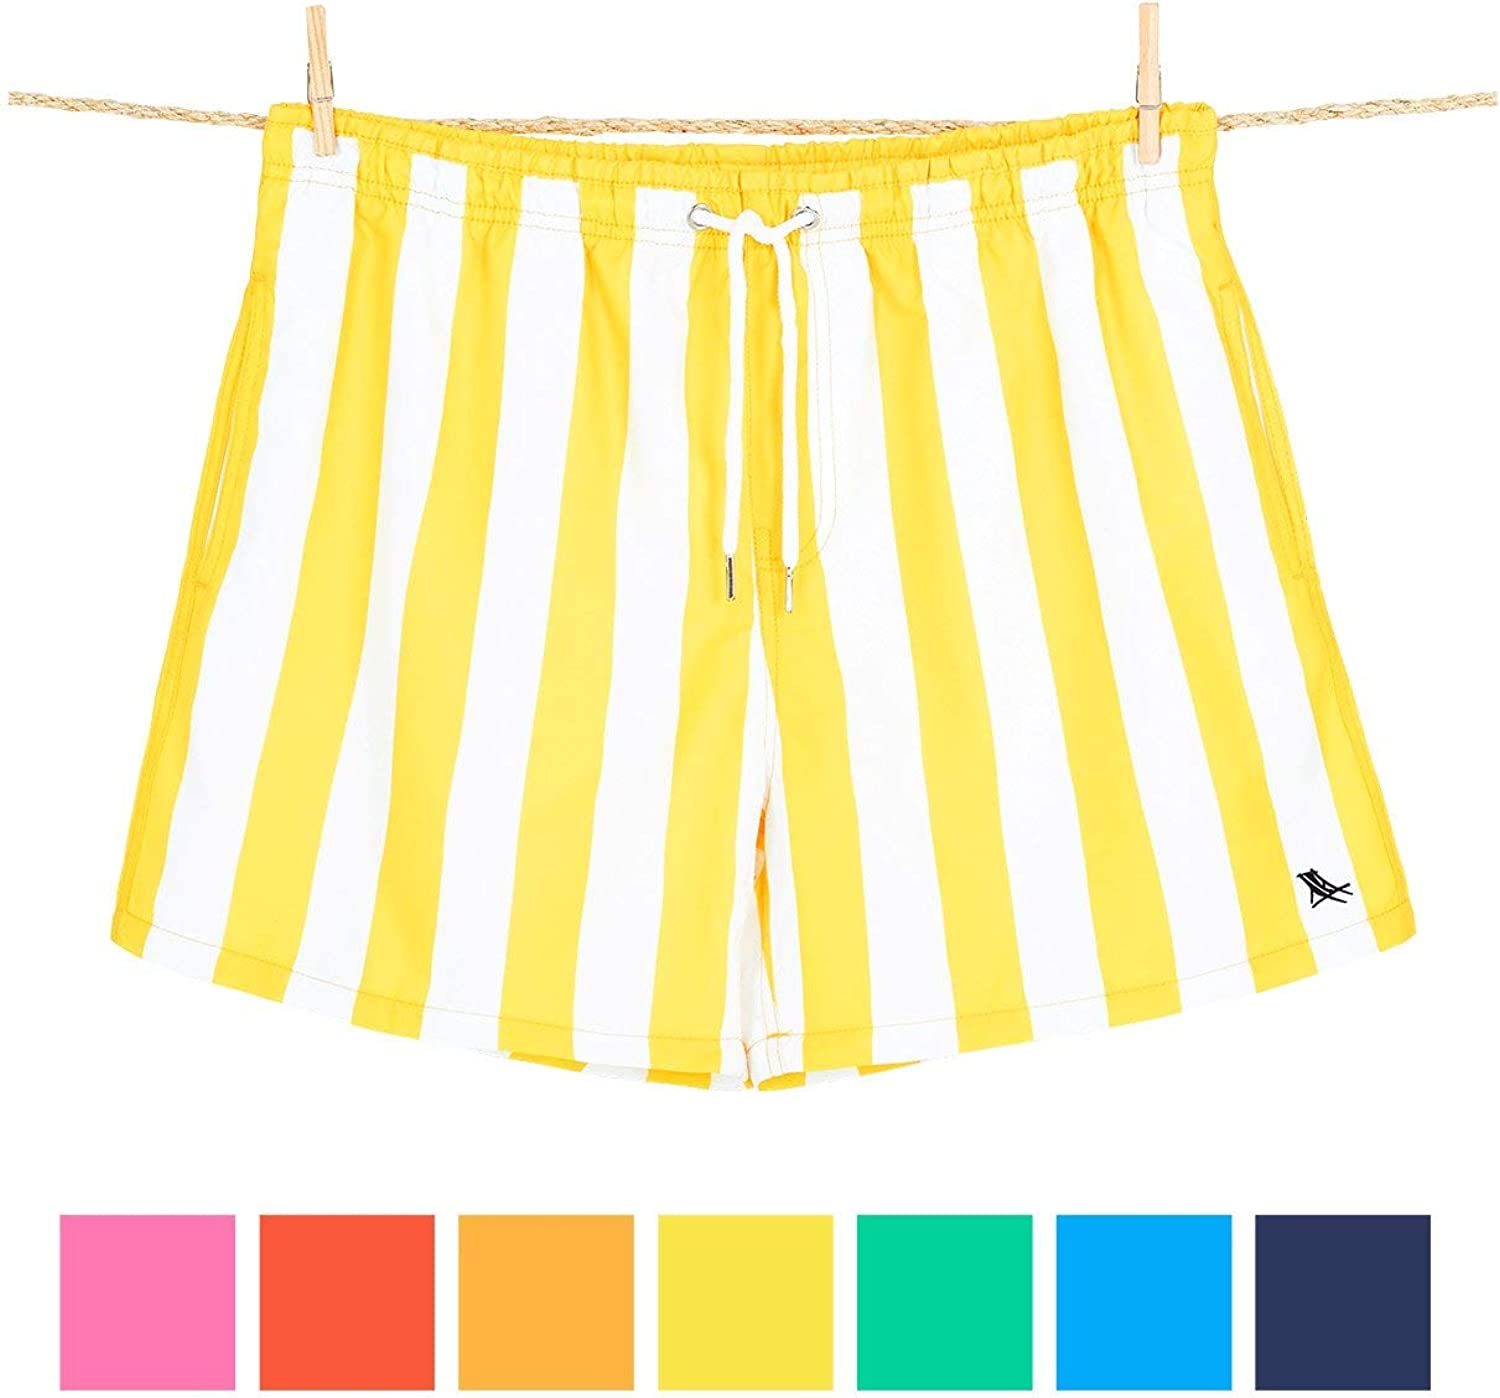 Board Shorts /& Swimming Trunks for Men Swim Shorts Beach Shorts for Swimming Pool Made from 100/% Recycled Water Bottles Travel Dock /& Bay Quick Dry Mens Swim Trunks